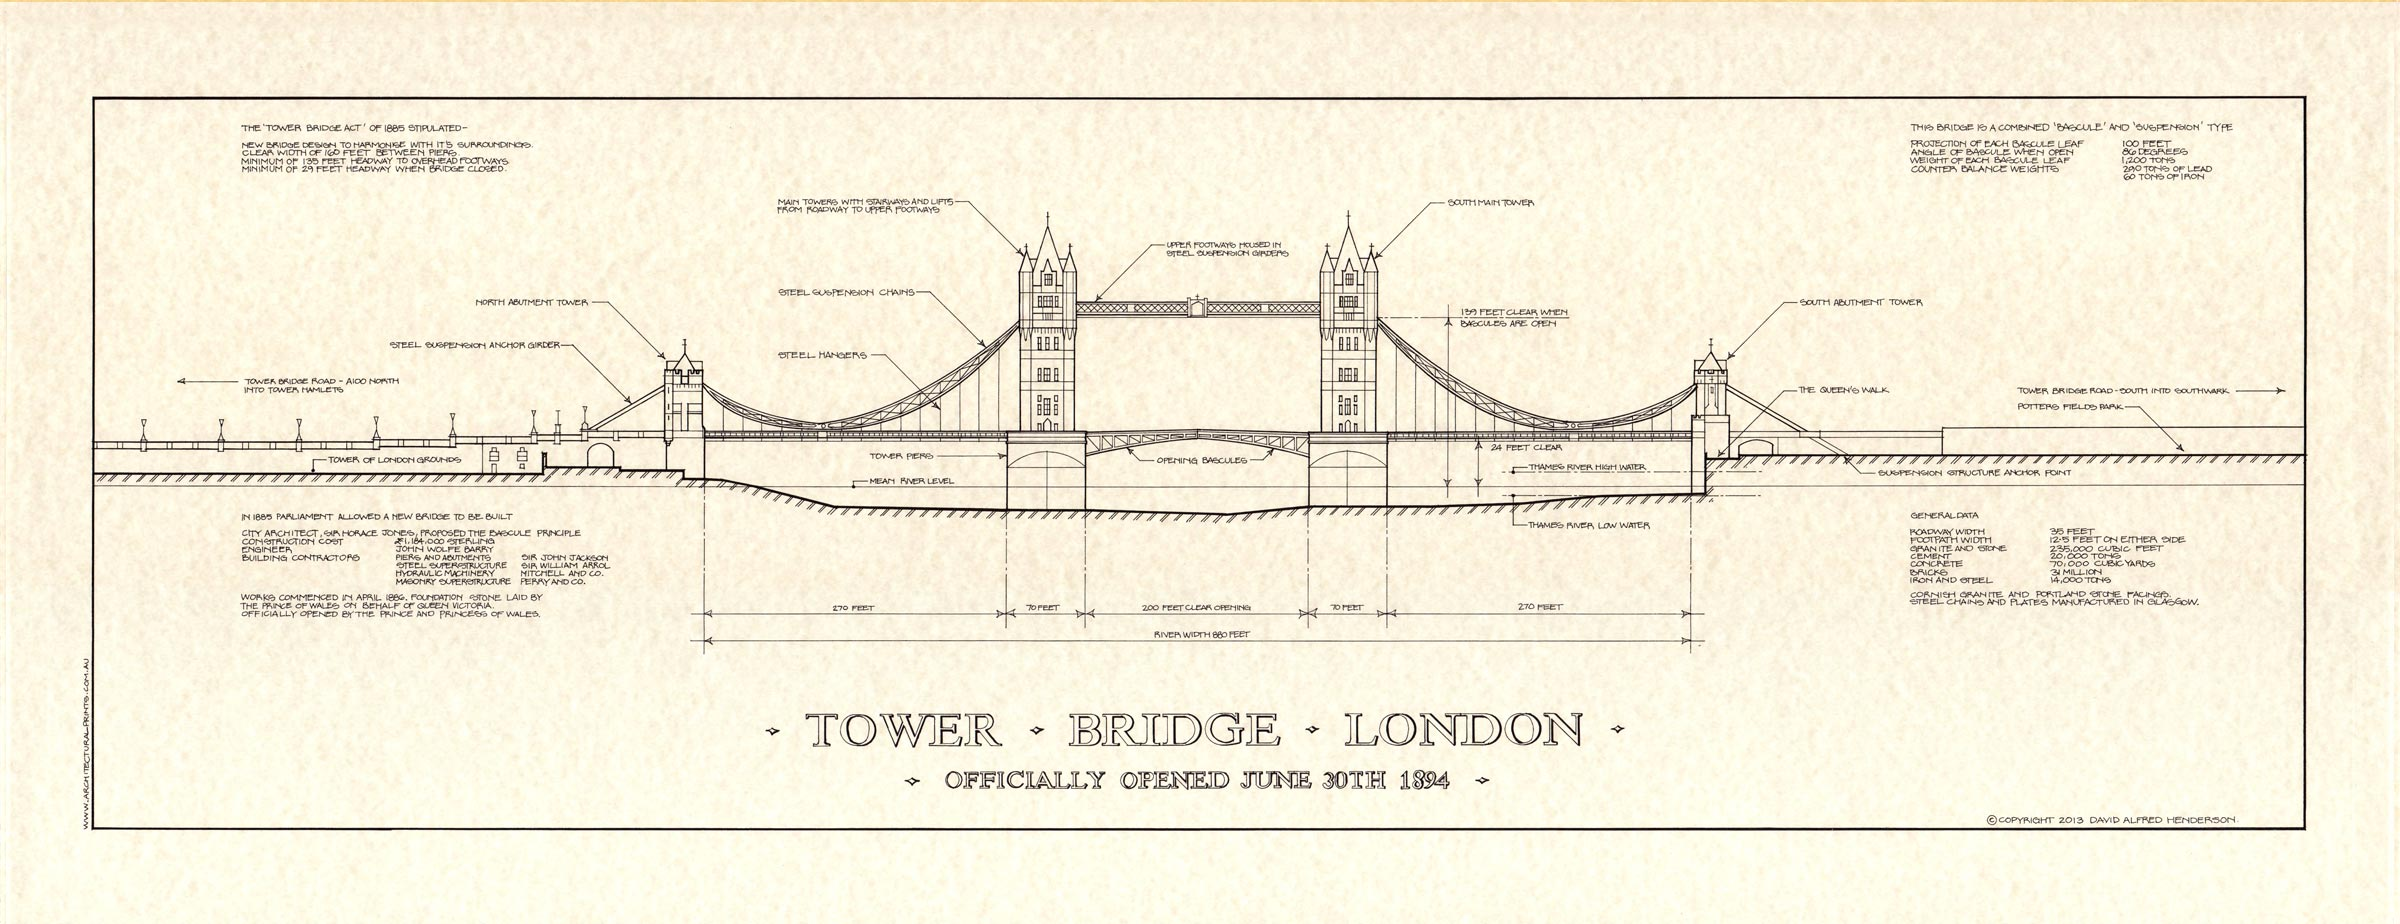 Engineering Schematic Prints Trusted Wiring Diagrams Wow Schematics London Tower Bridge Print Architectural Rh Architecturalprints Com Au Pet Recipes Goblin